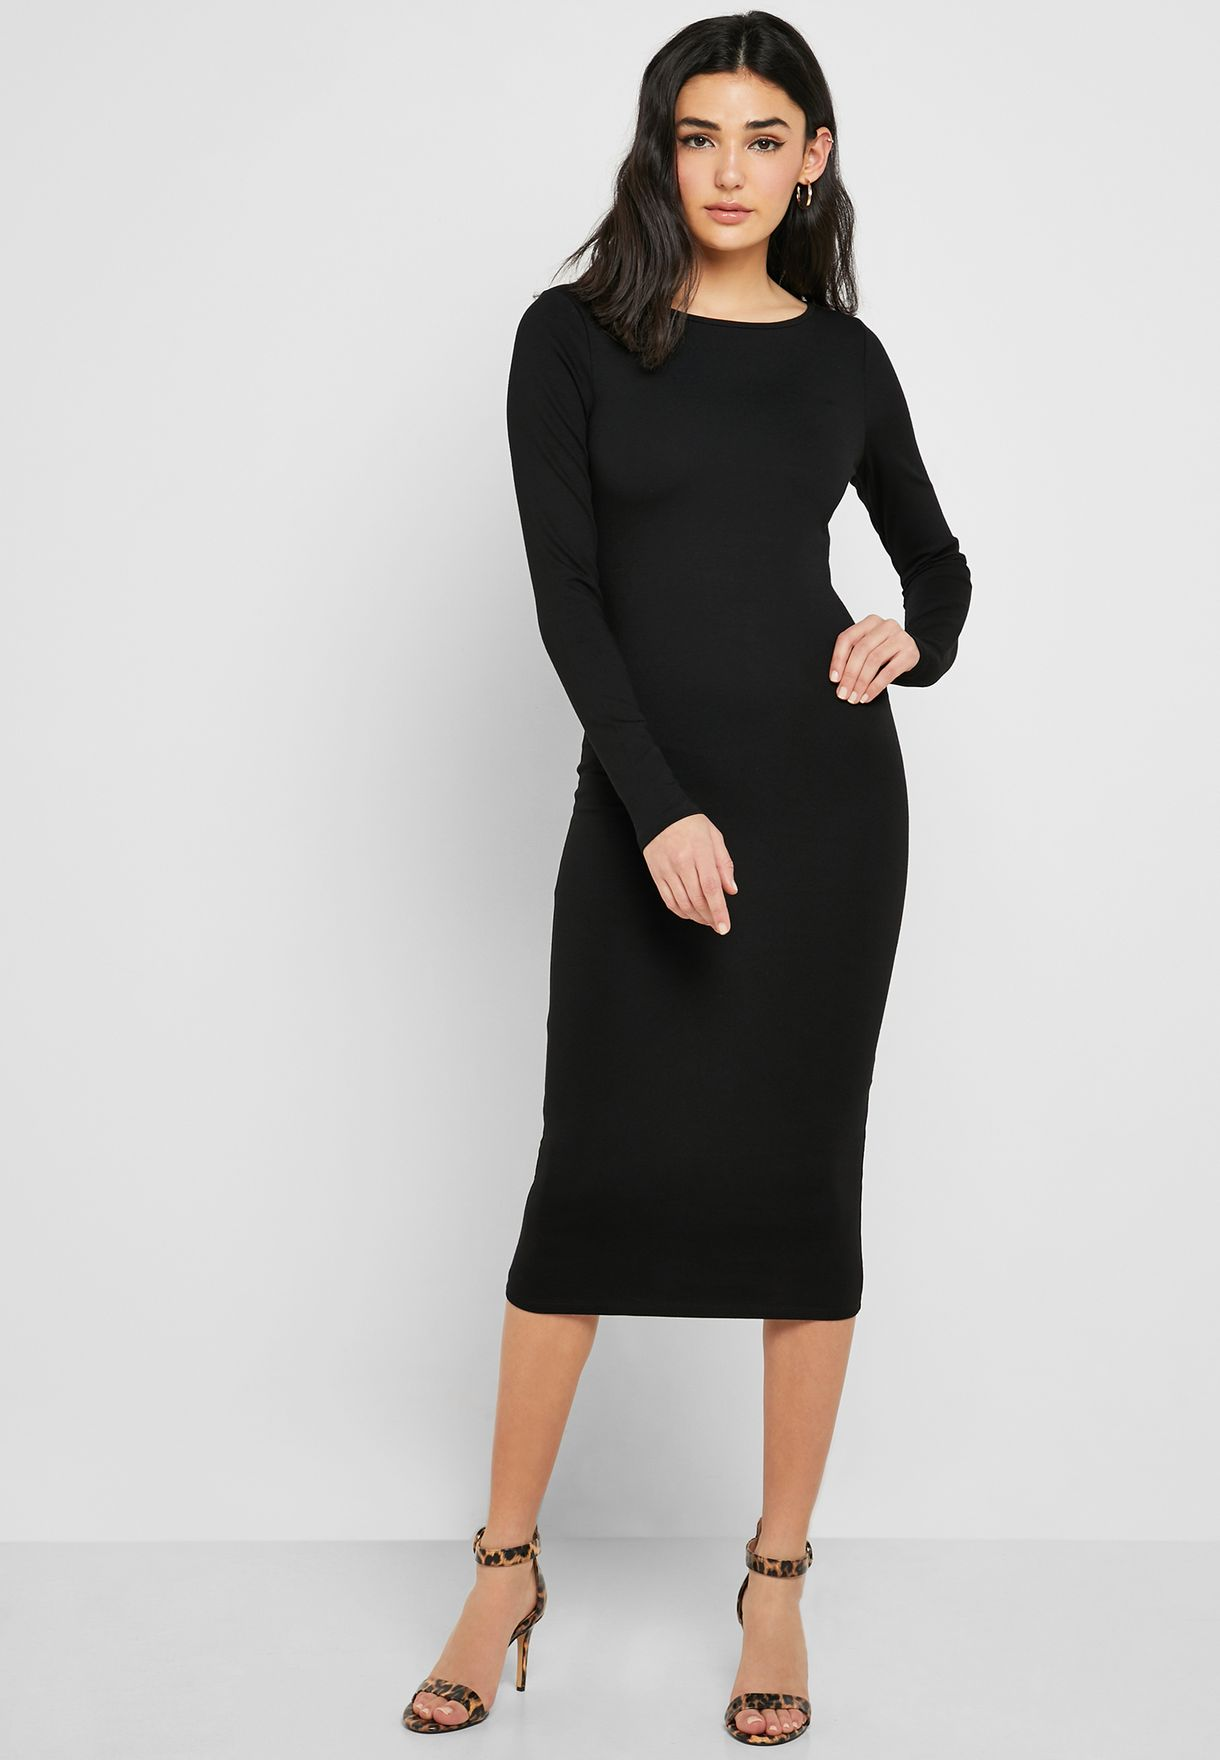 Shop Forever 21 Black Long Sleeve Bodycon Dress 327491 For